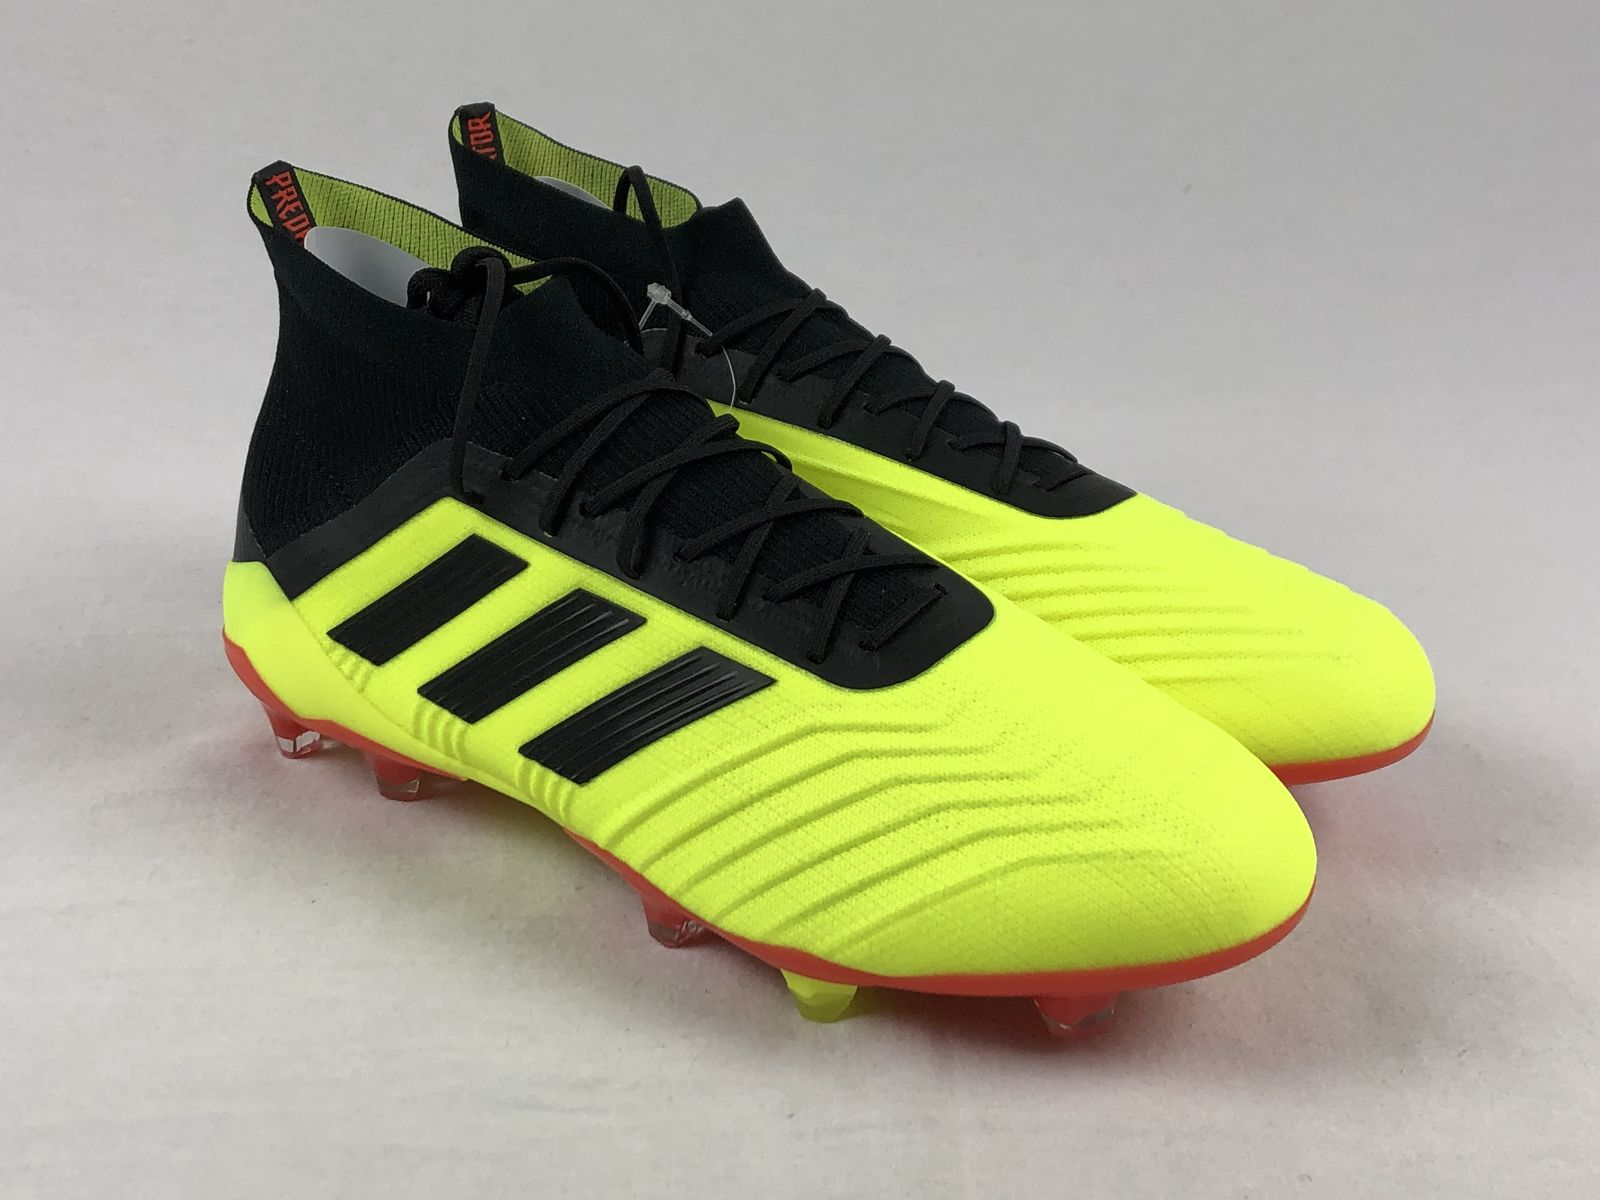 e83caccc8 Details about NEW adidas Predator 18.1 FG - Yellow Black Cleats (Men s  Multiple Sizes)